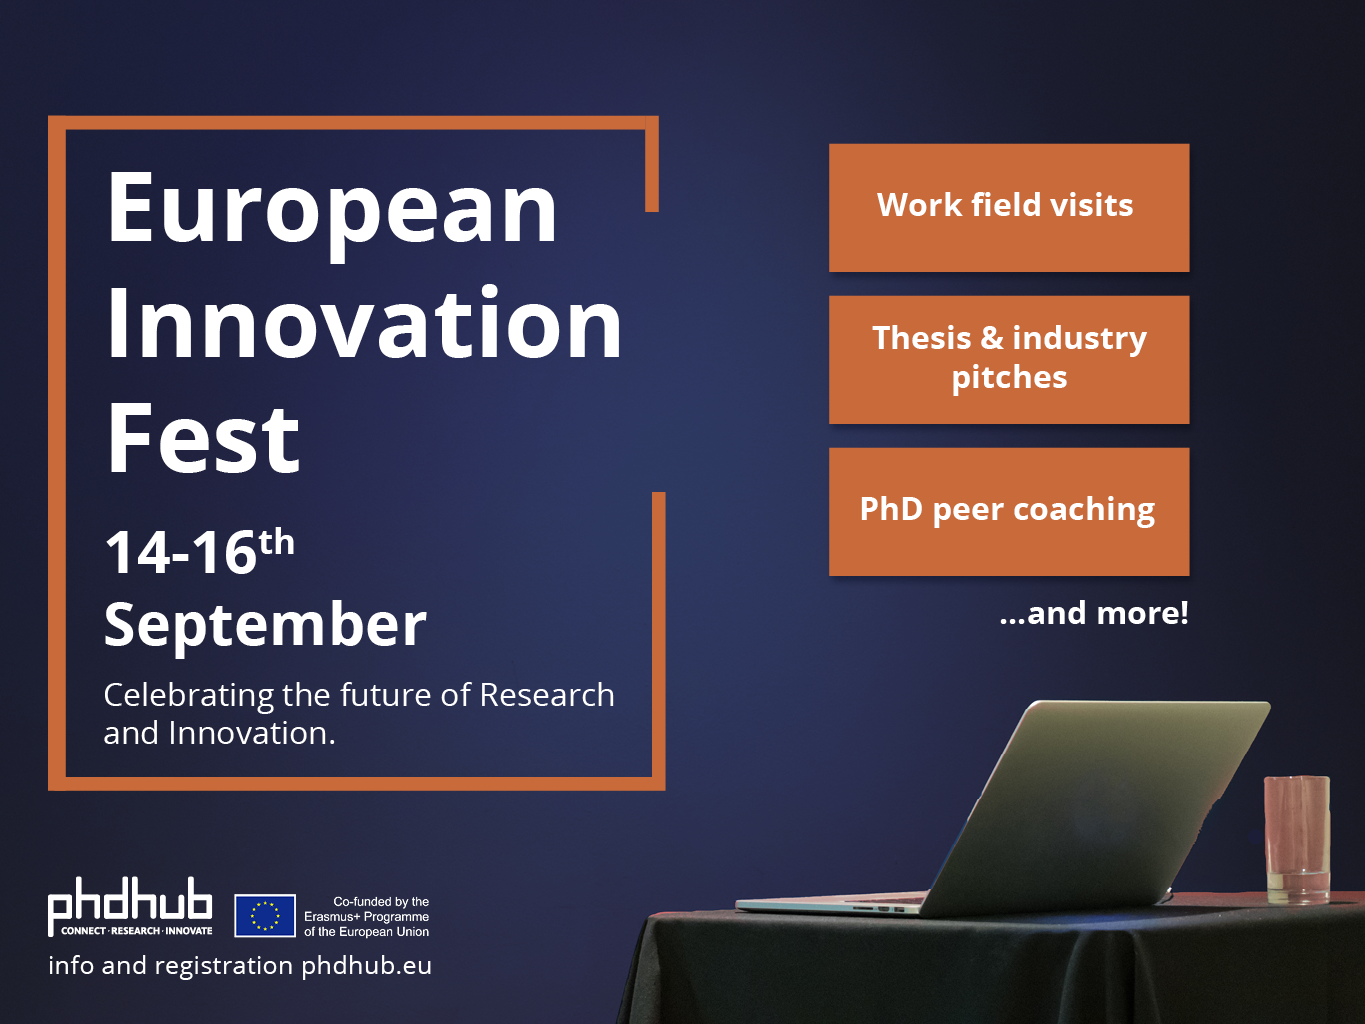 European Innovation Fest 2020